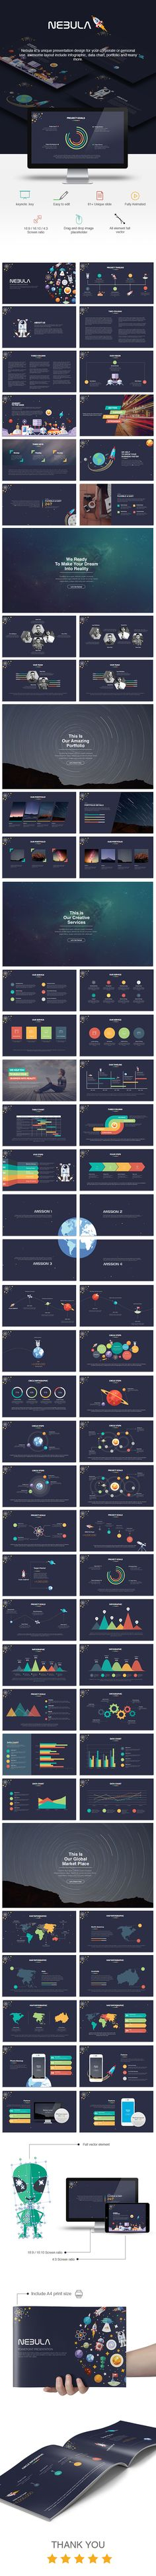 Nebula Keynote Presentation Template #design #slides Download…